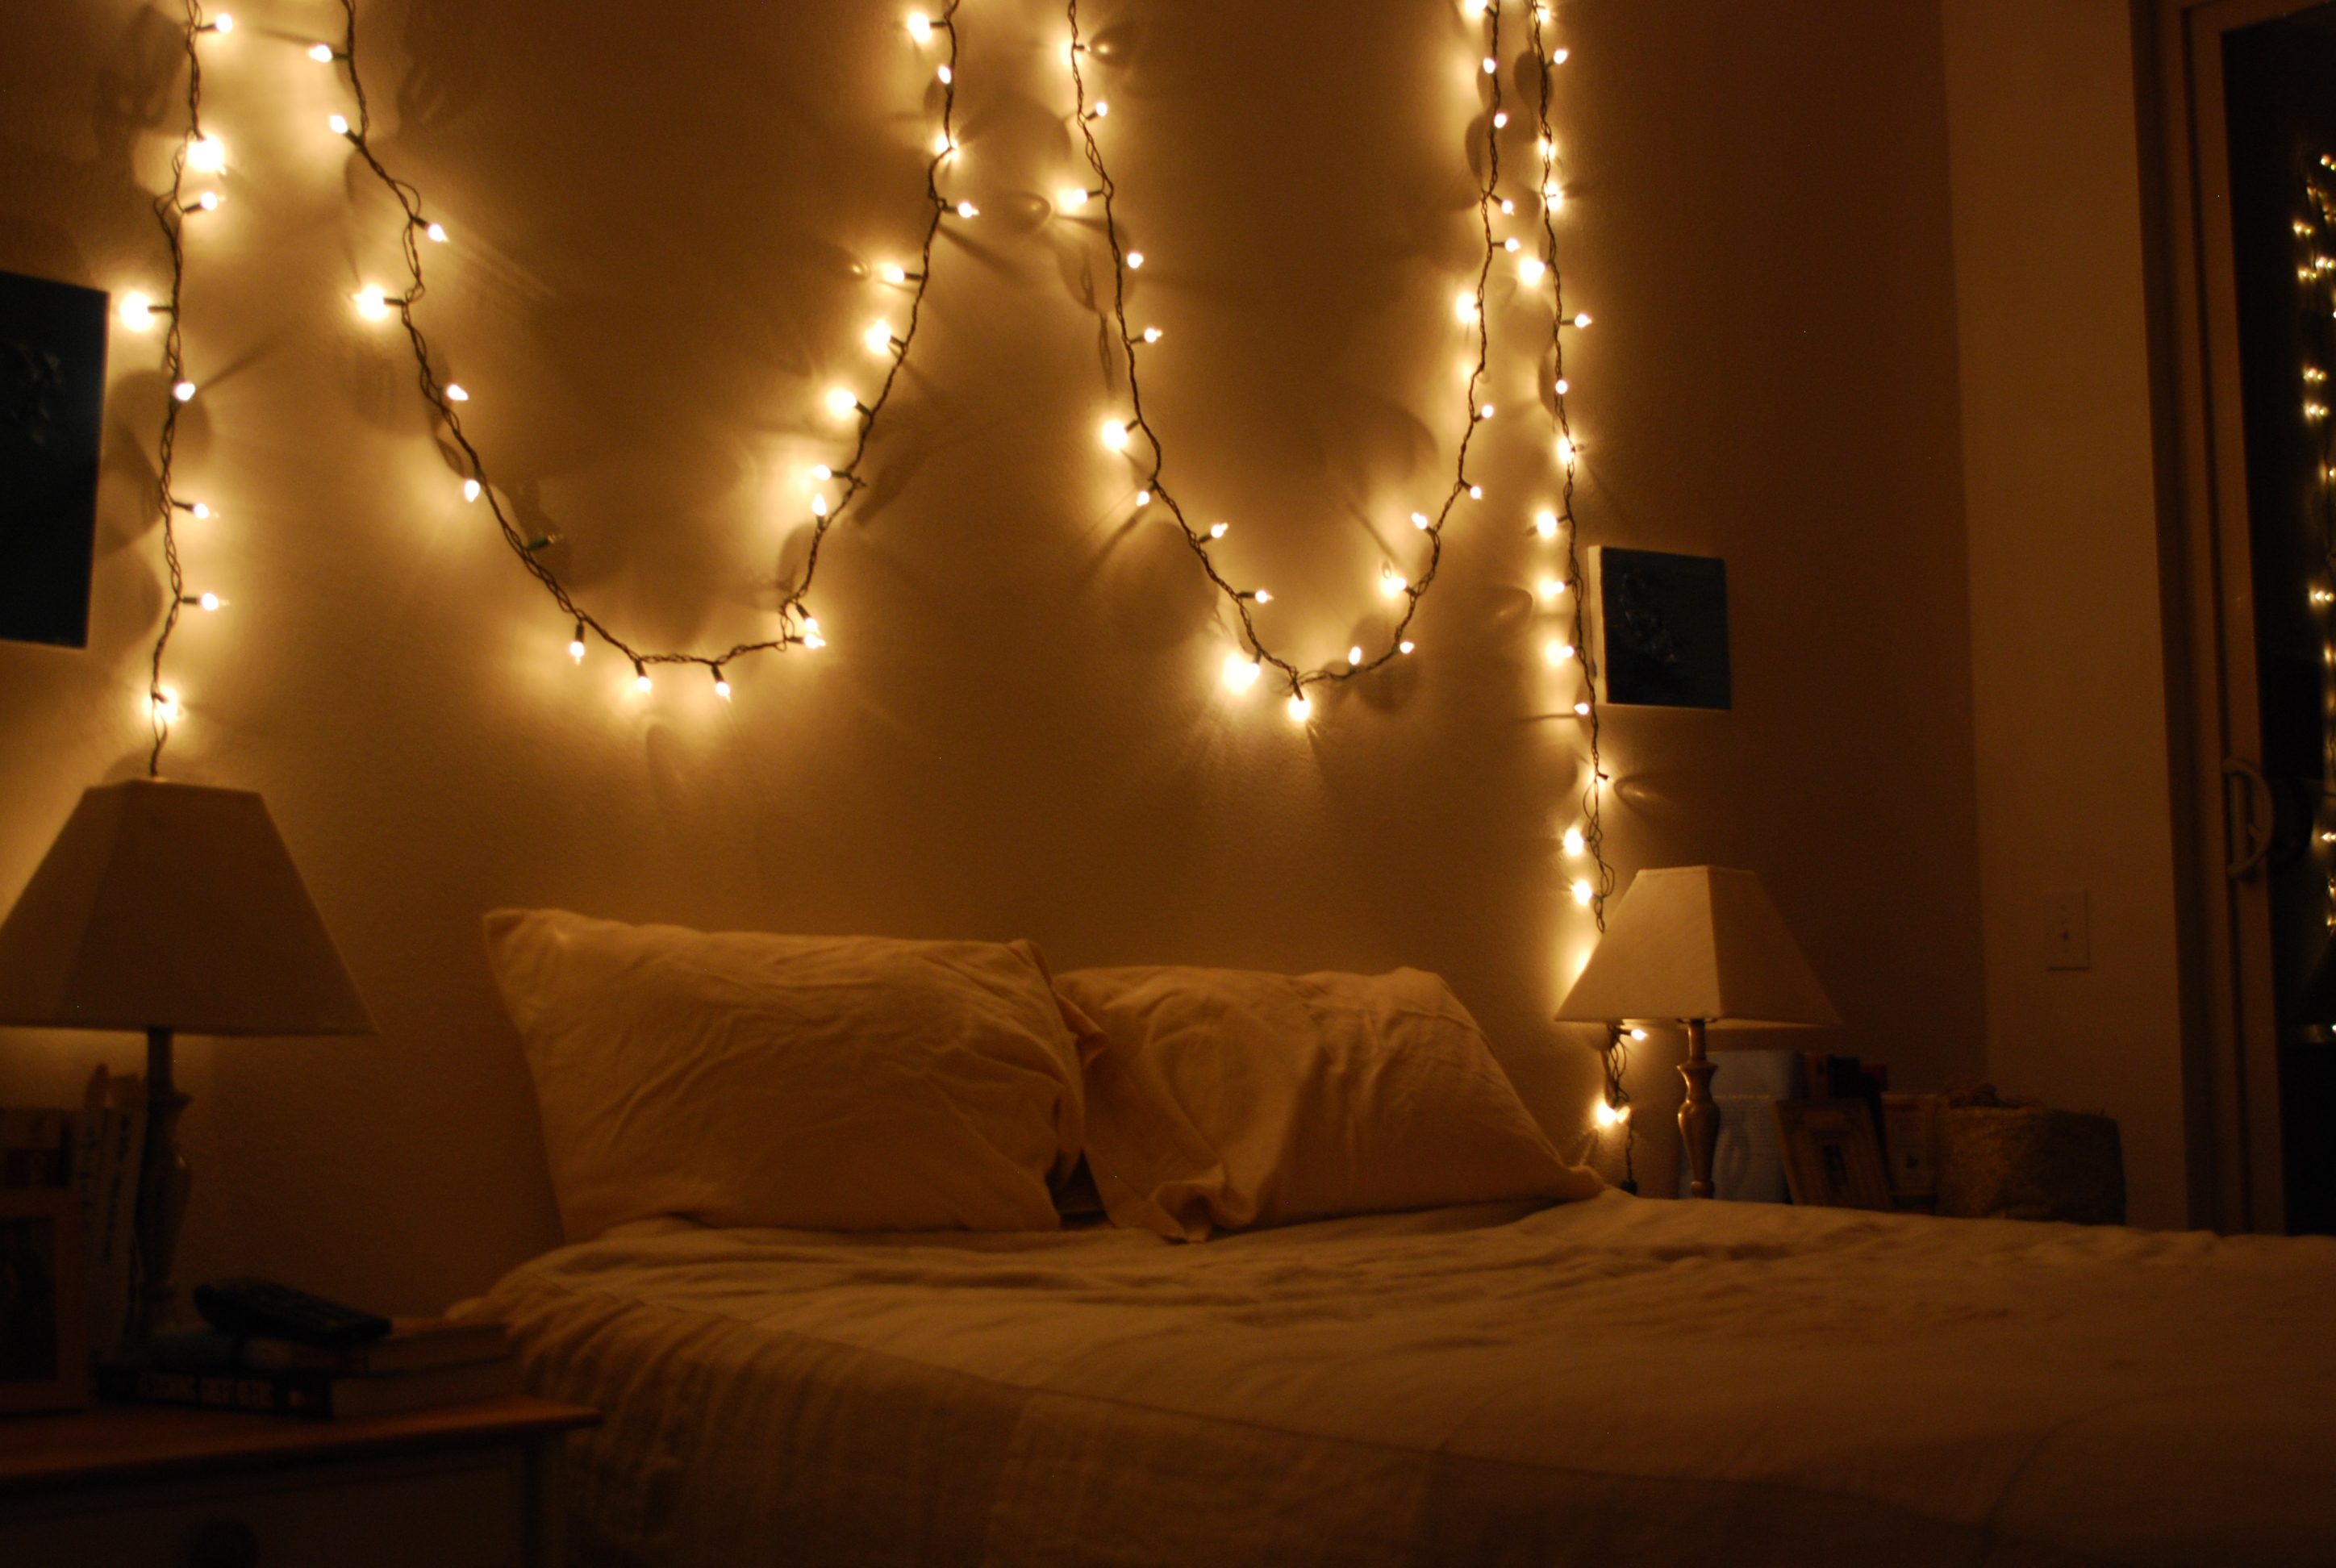 1000 images about bedroom on pinterest christmas lights for Bedroom designs light